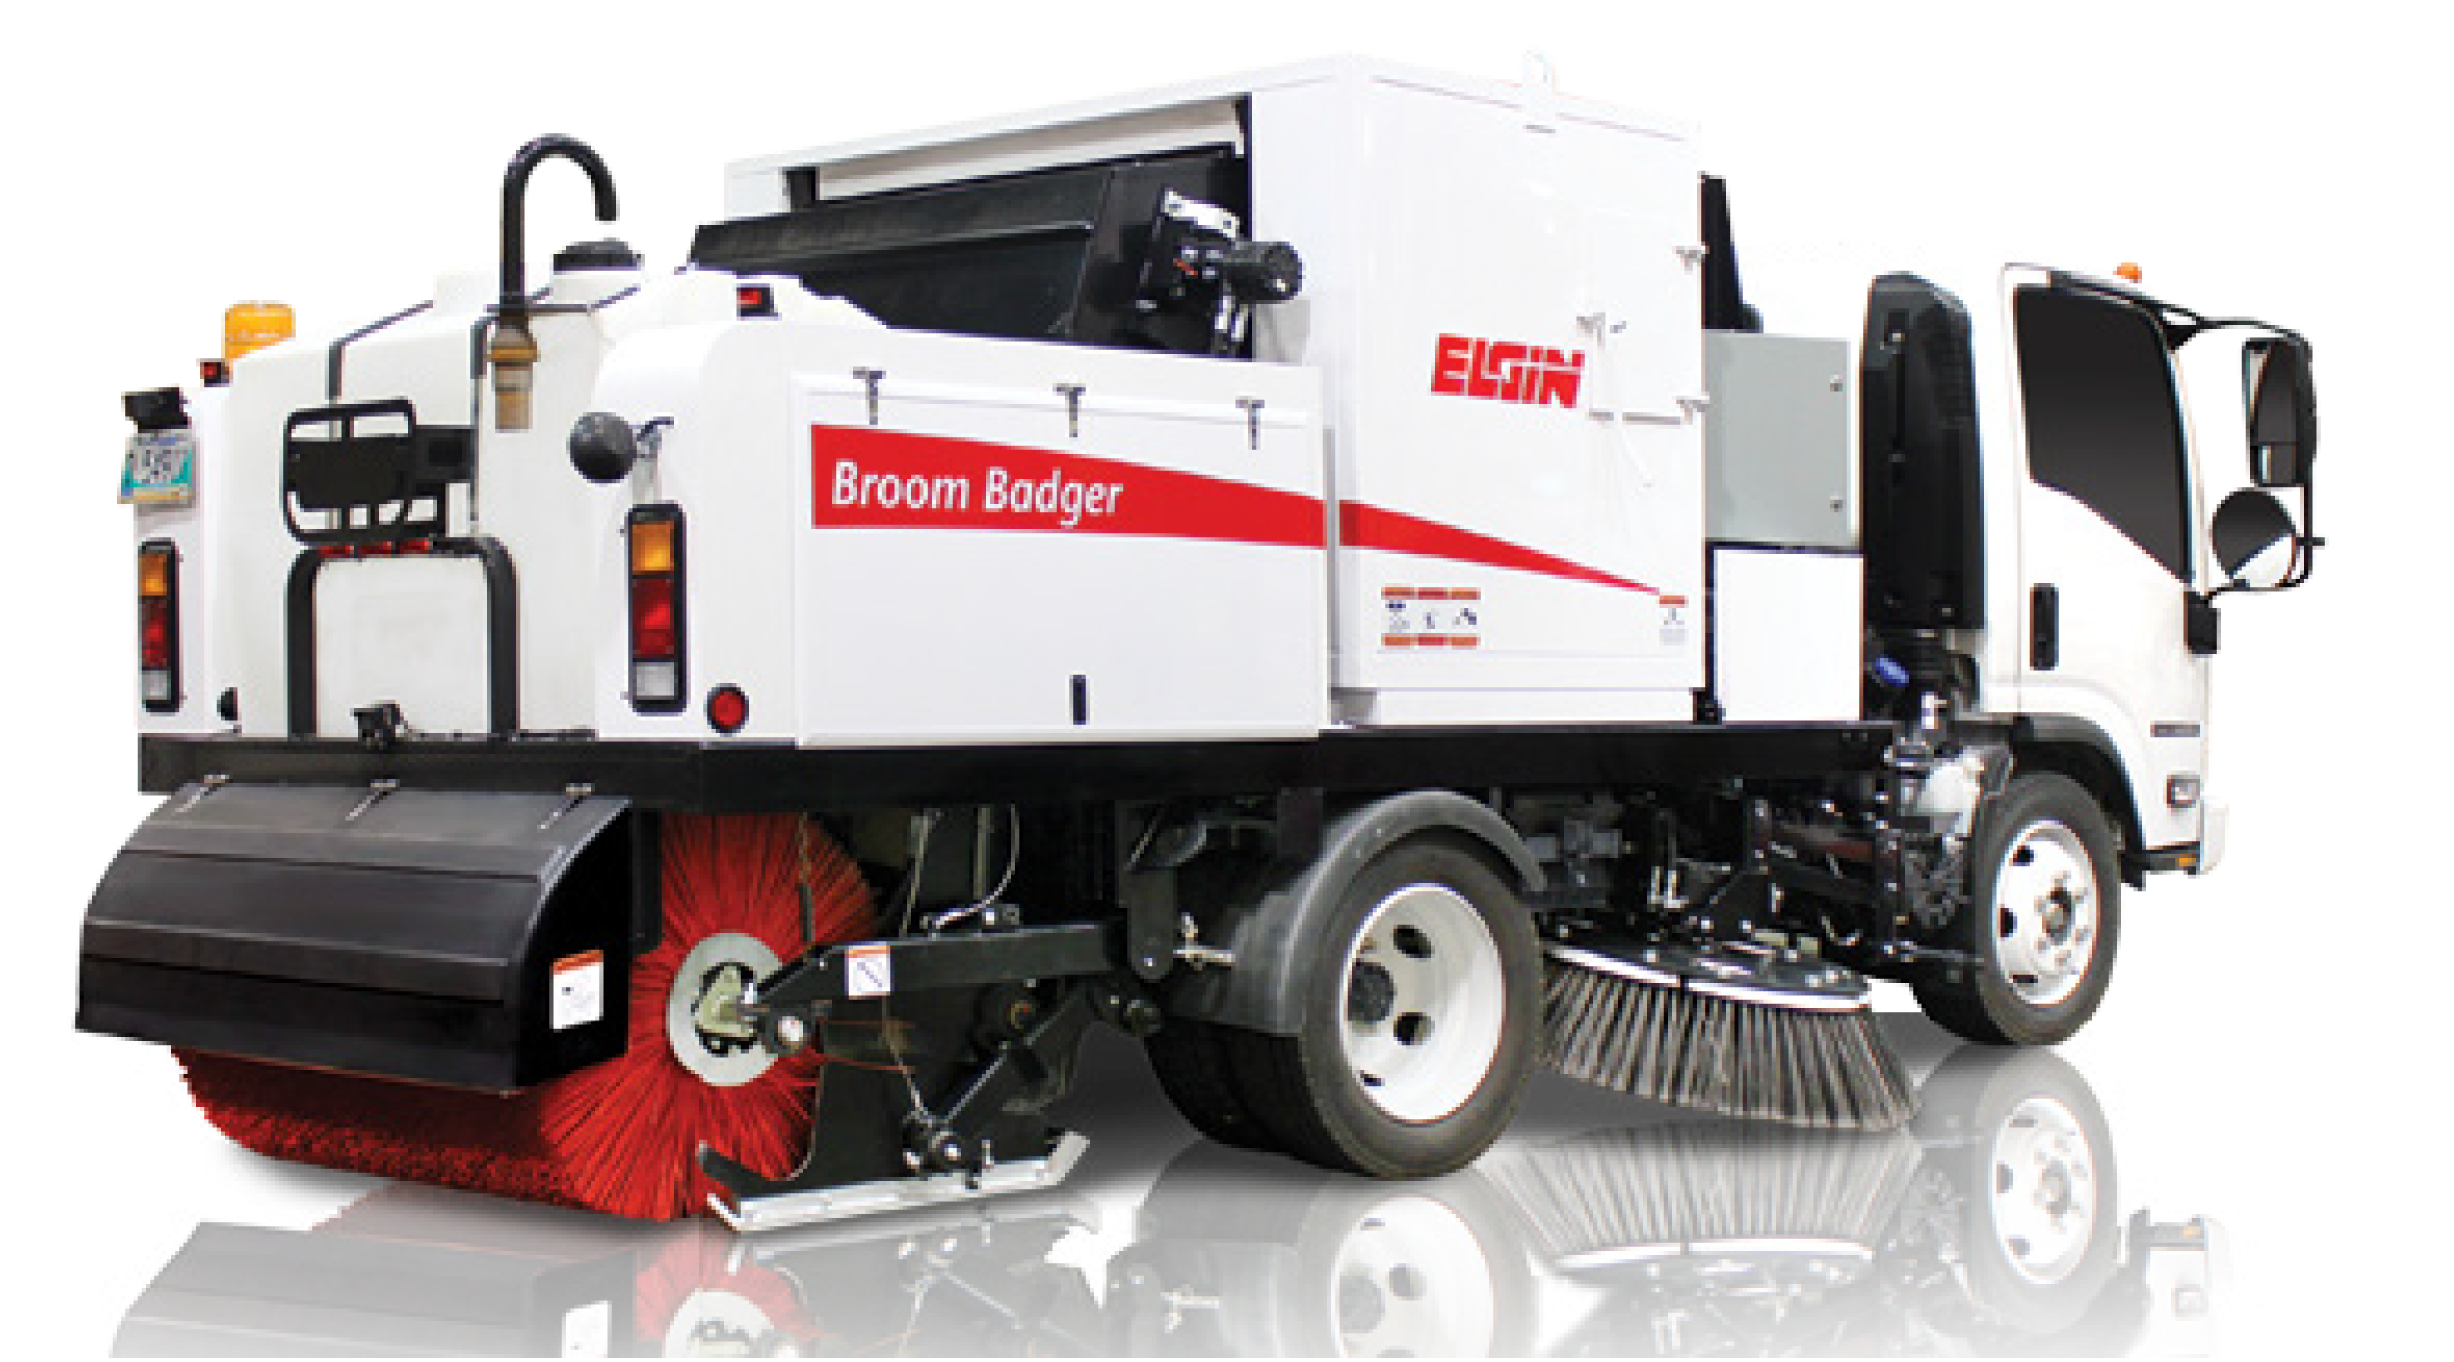 BROOM BADGER STREET SWEEPER Preview Image